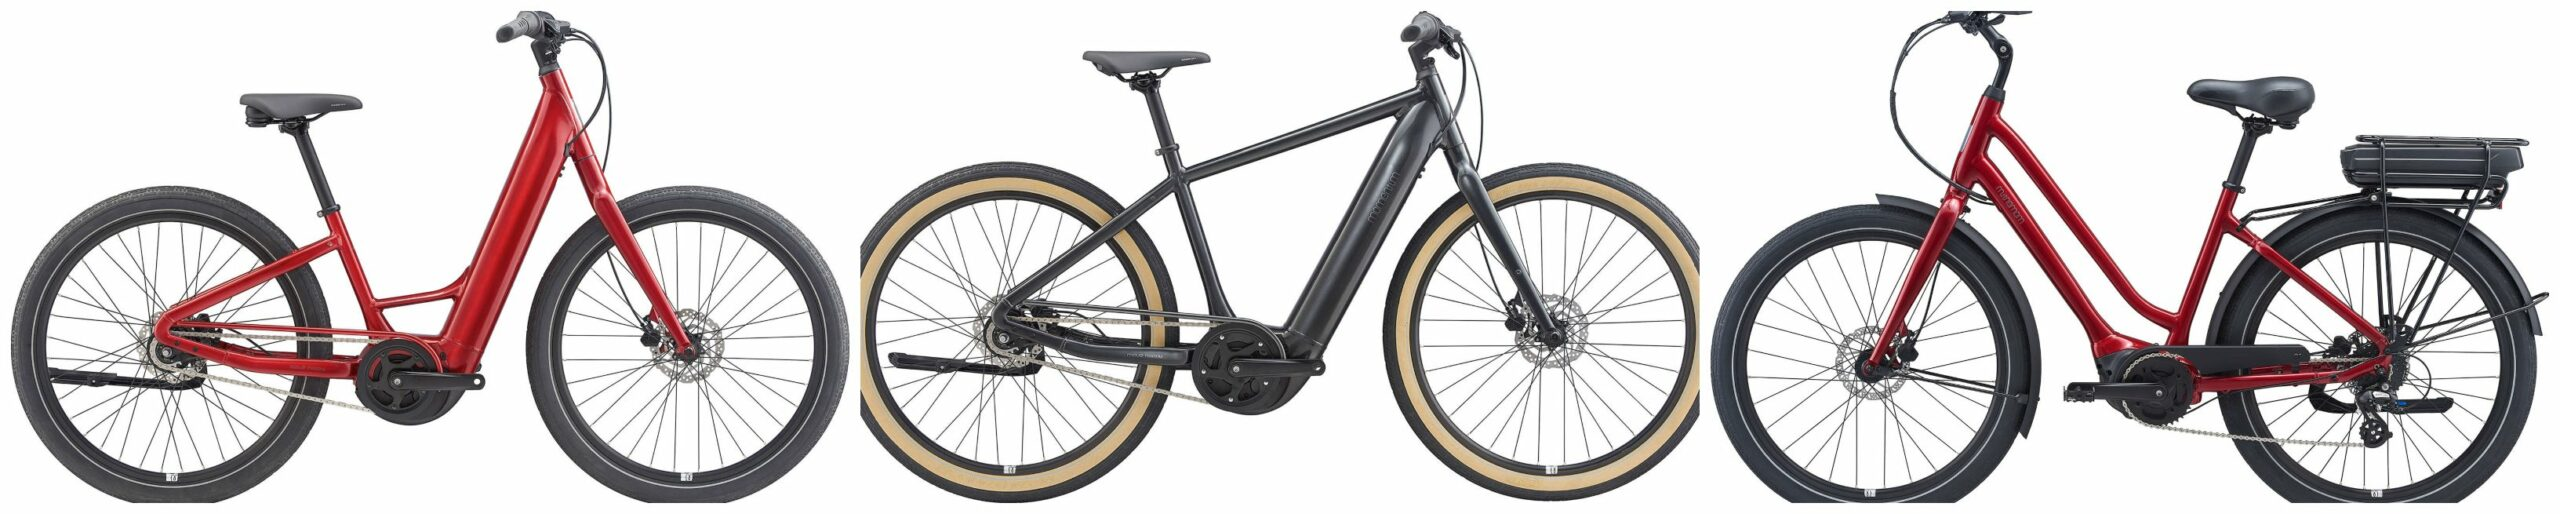 Giant Momentum lifestyle e-bikes review